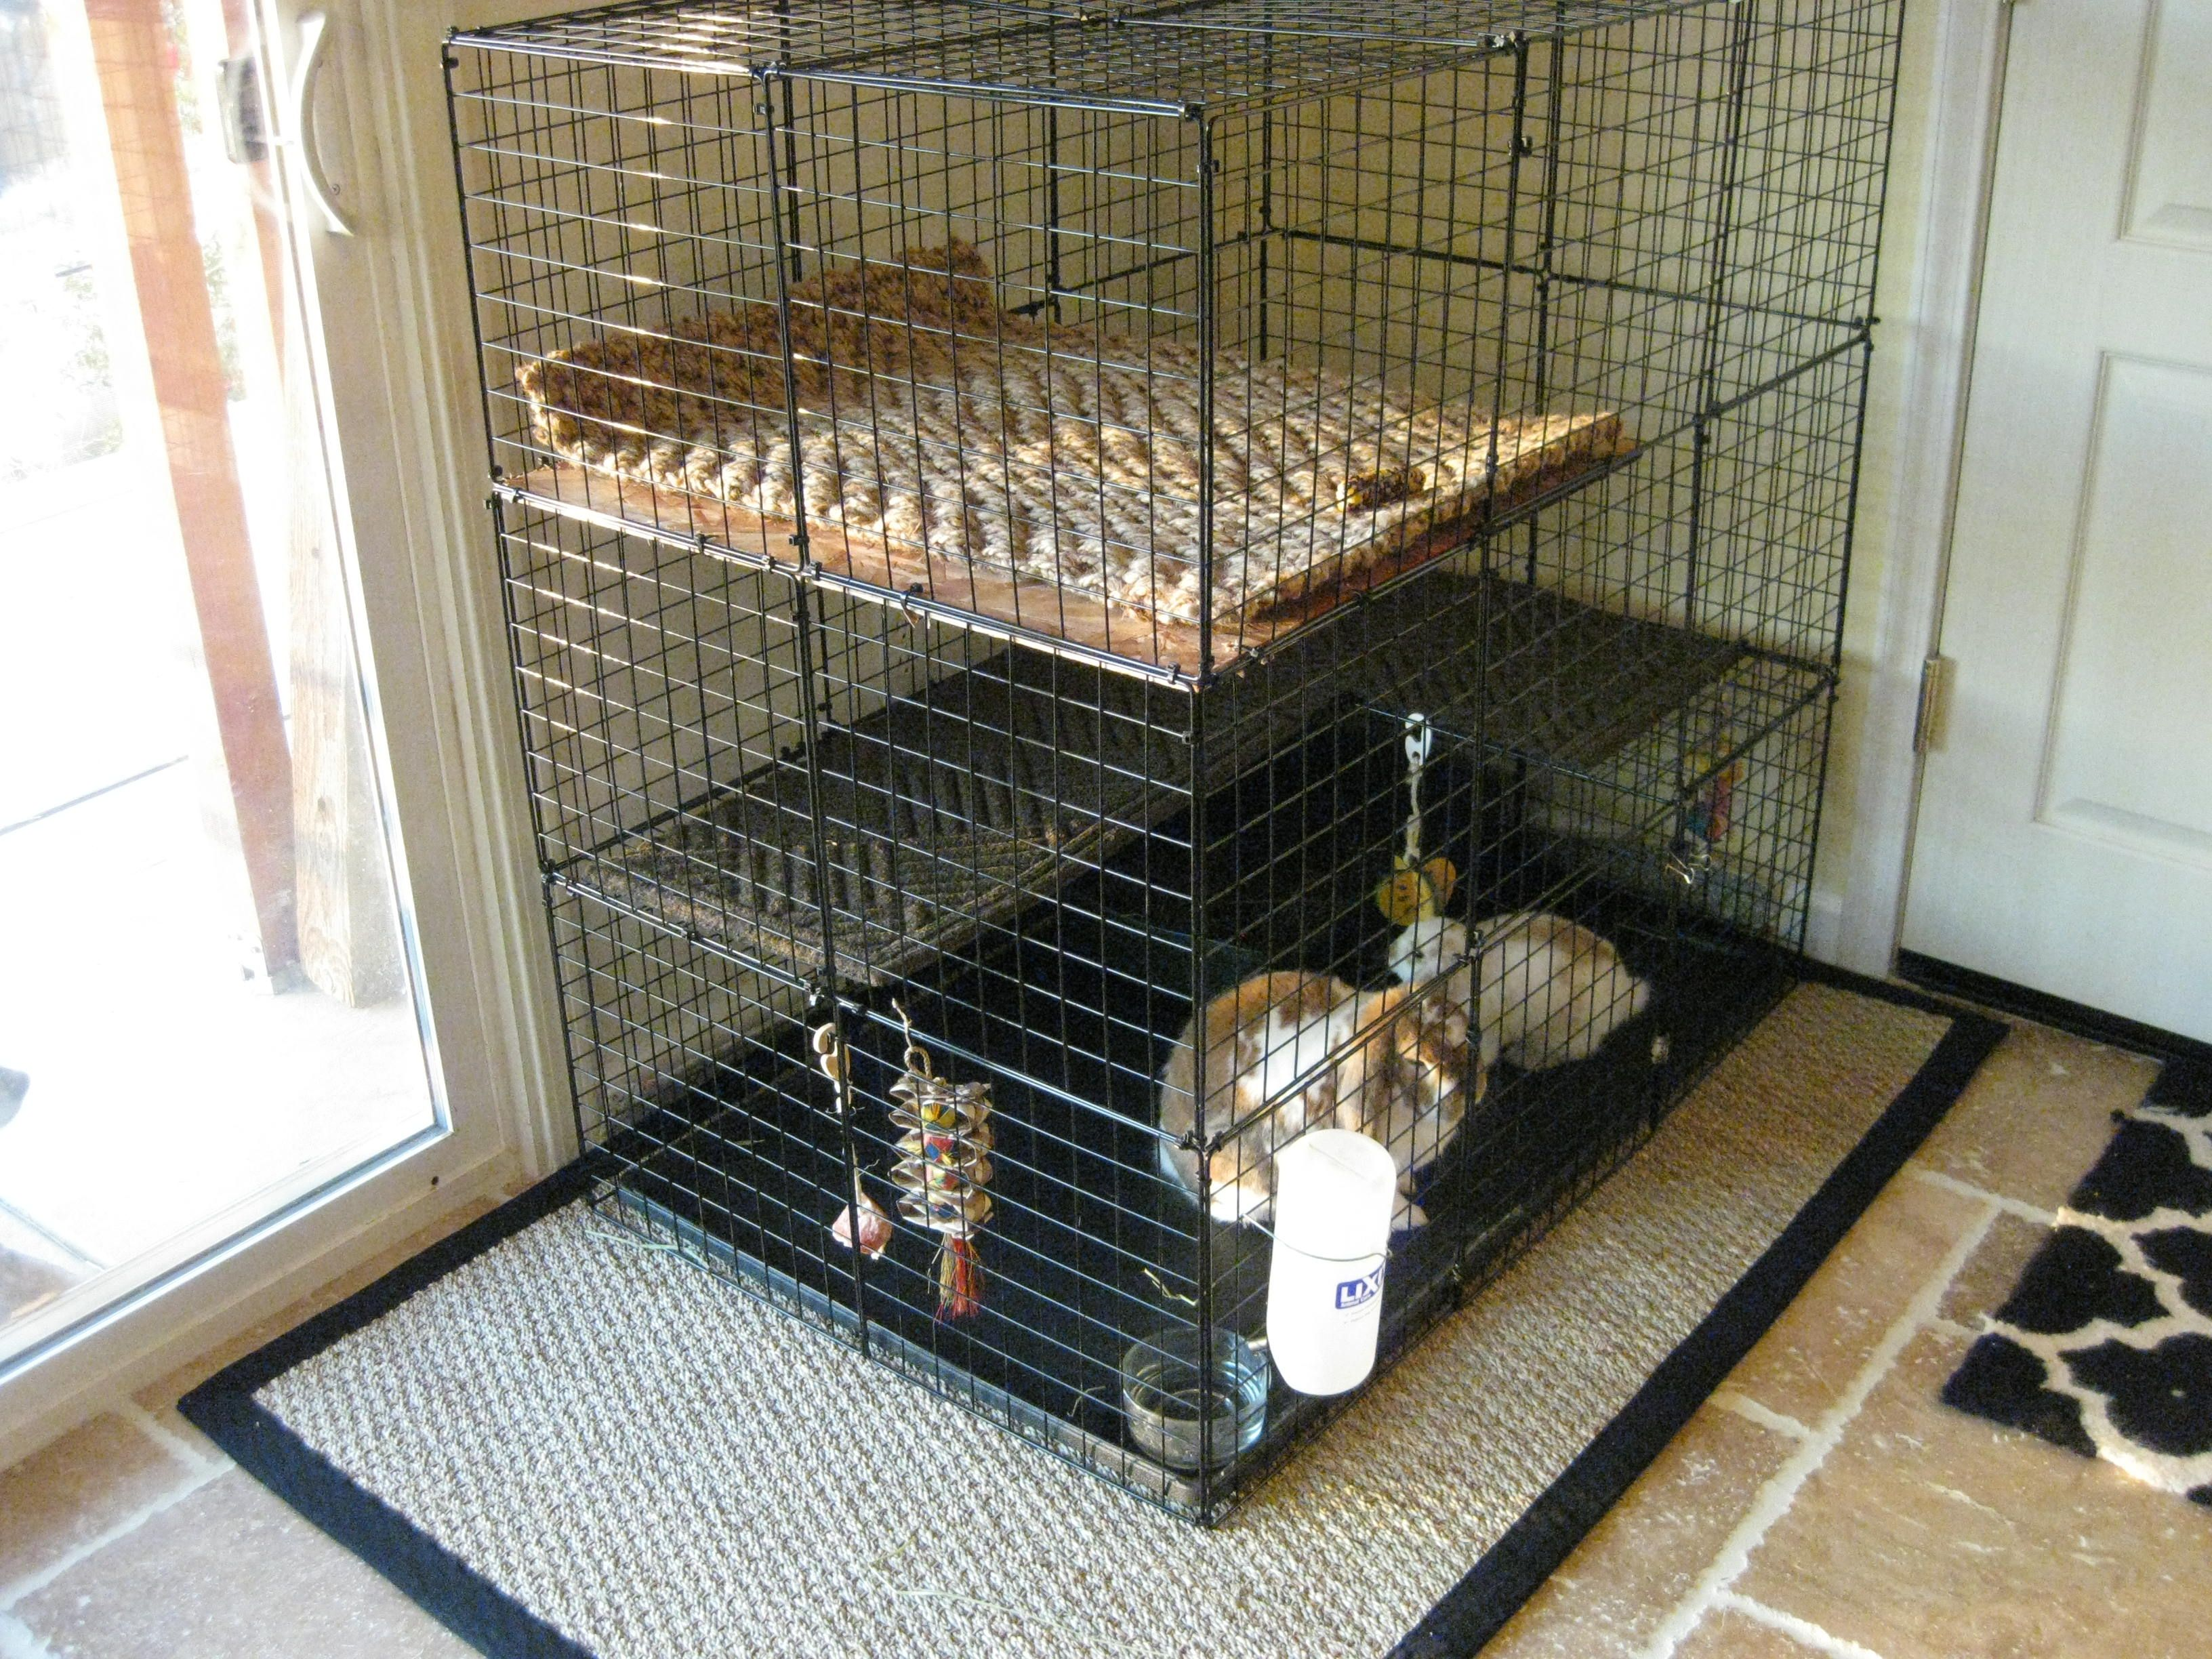 Diy Cage For Rabbit Tasteful C Andc Cage I Used A Dog Crate Replacement Tray To